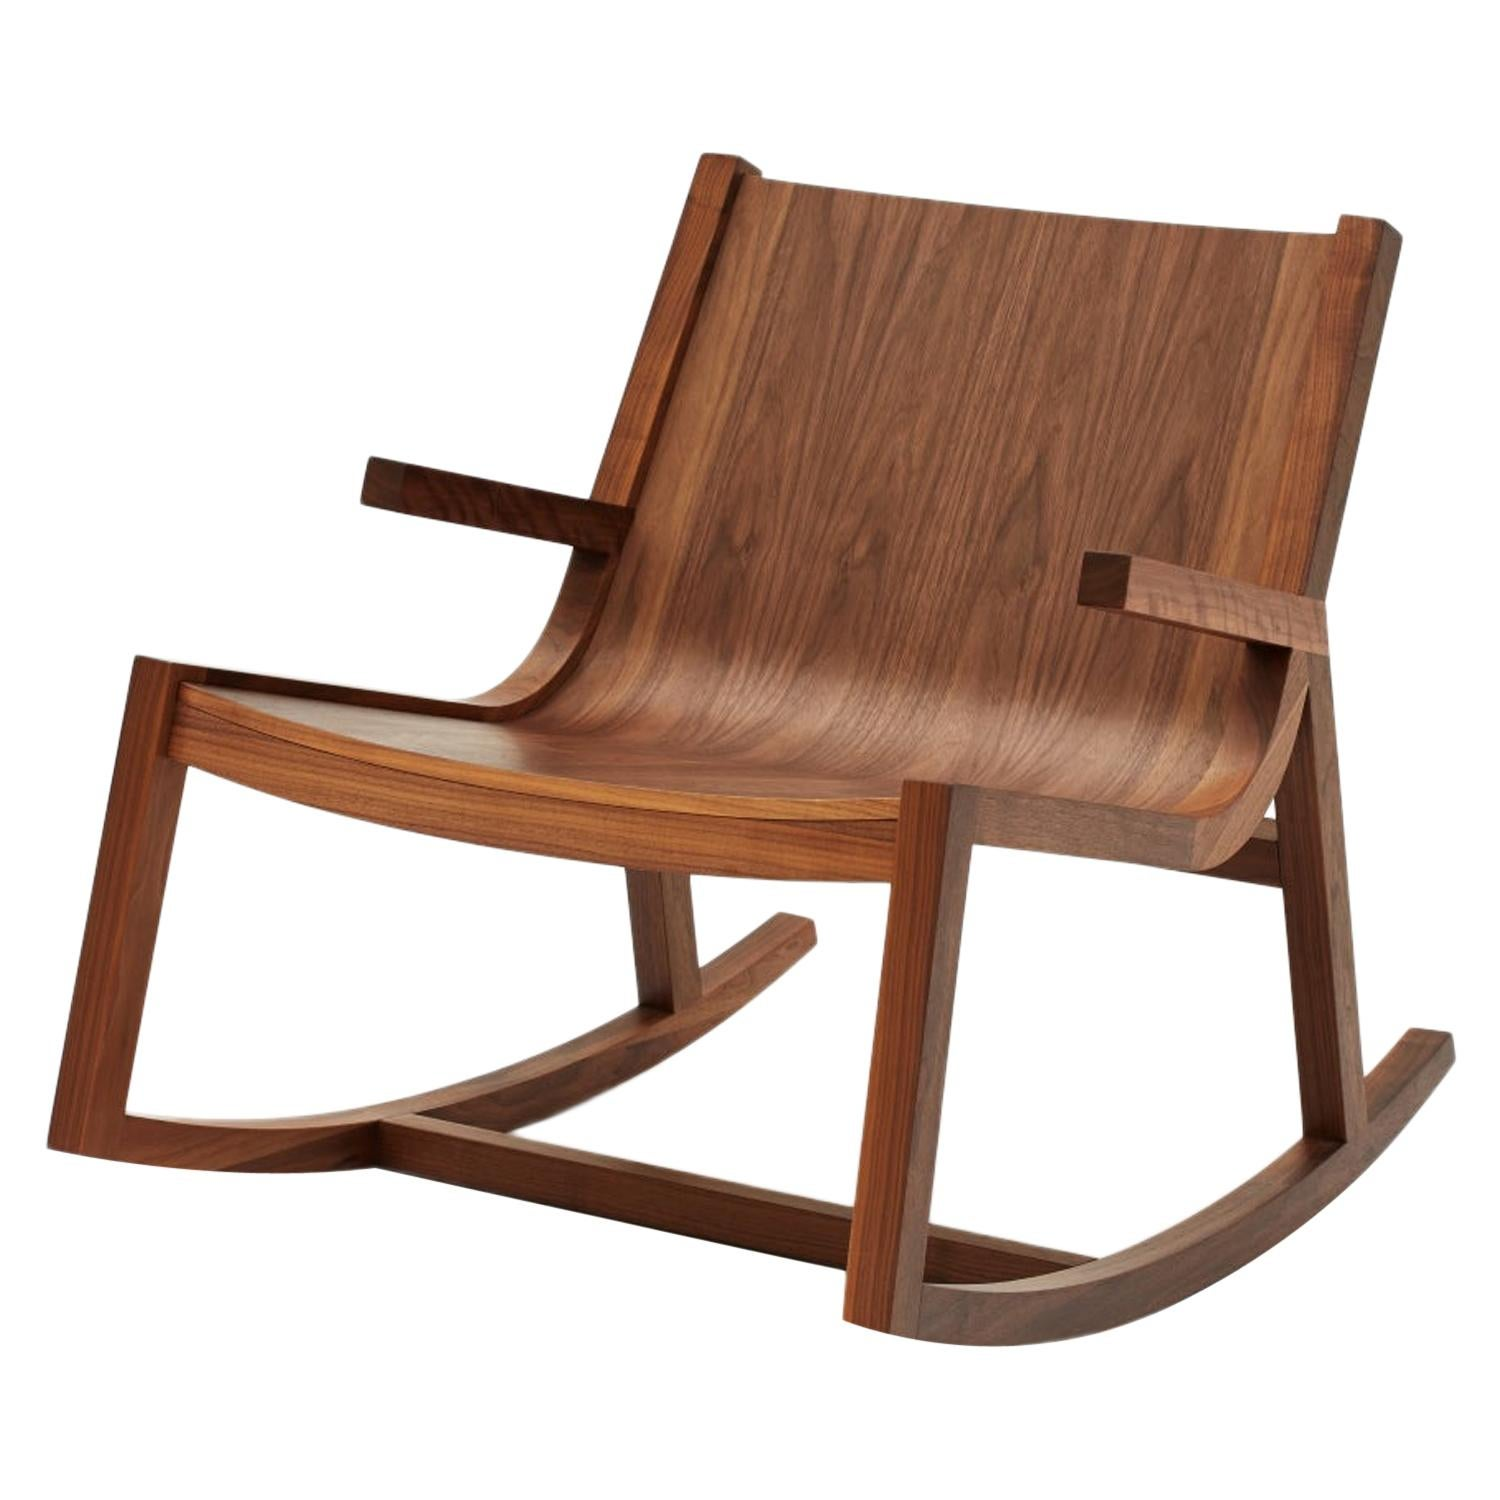 Umber Rocker Modern Low Rocking Chair in Walnut with Crafted Arm Detail